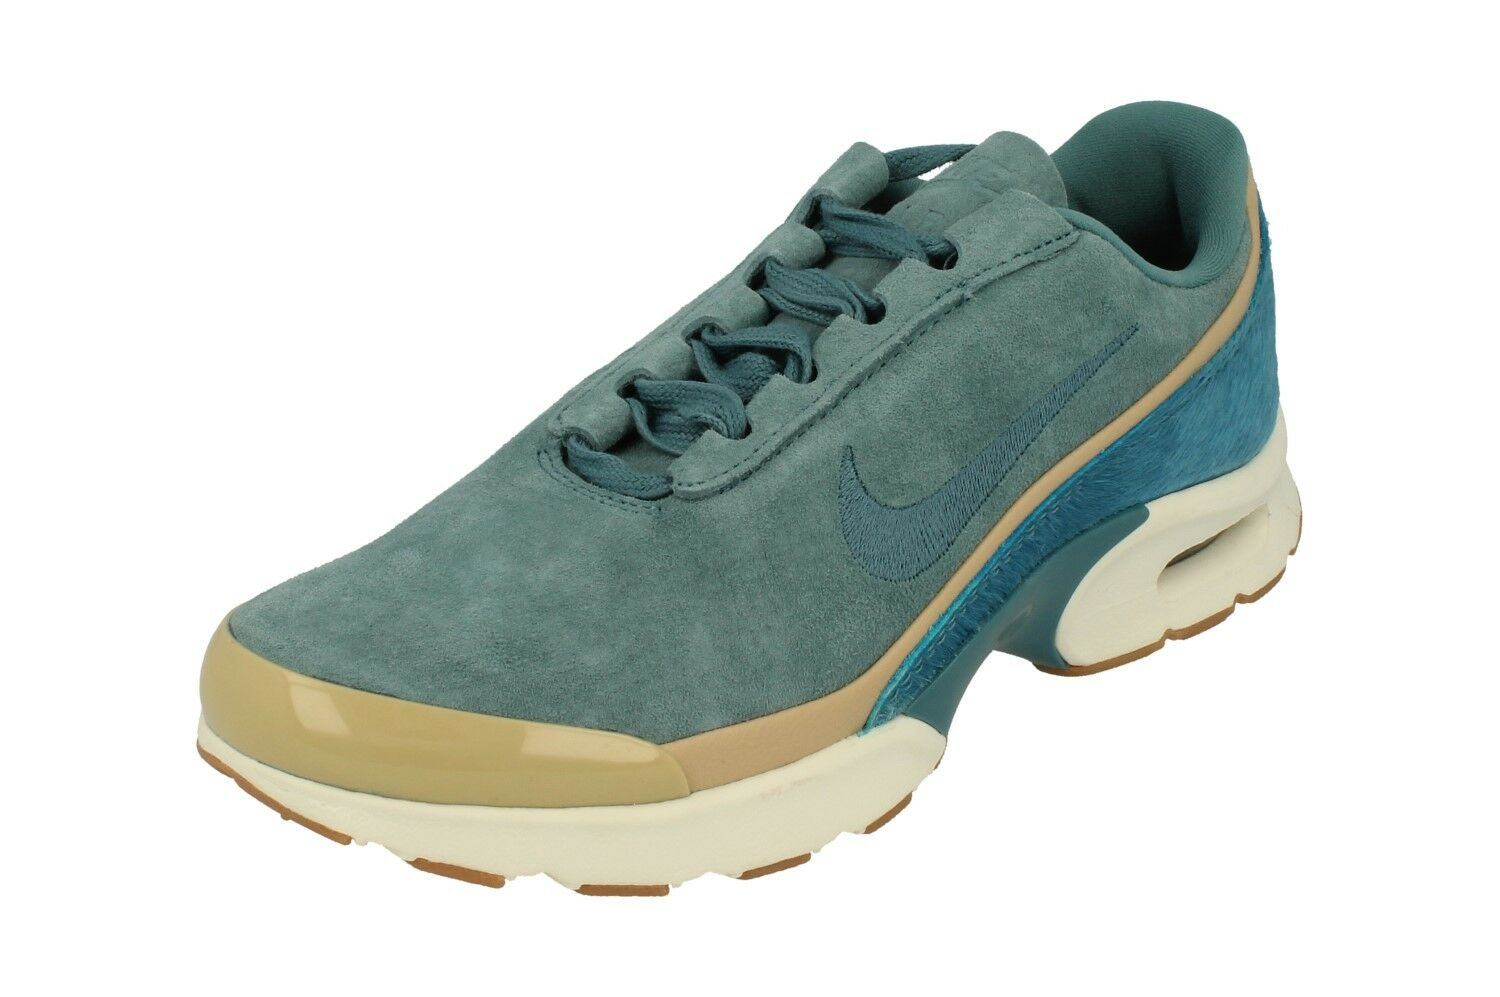 Nike Femmes Air Max Jewell LX Basket Course 896196 Baskets 002